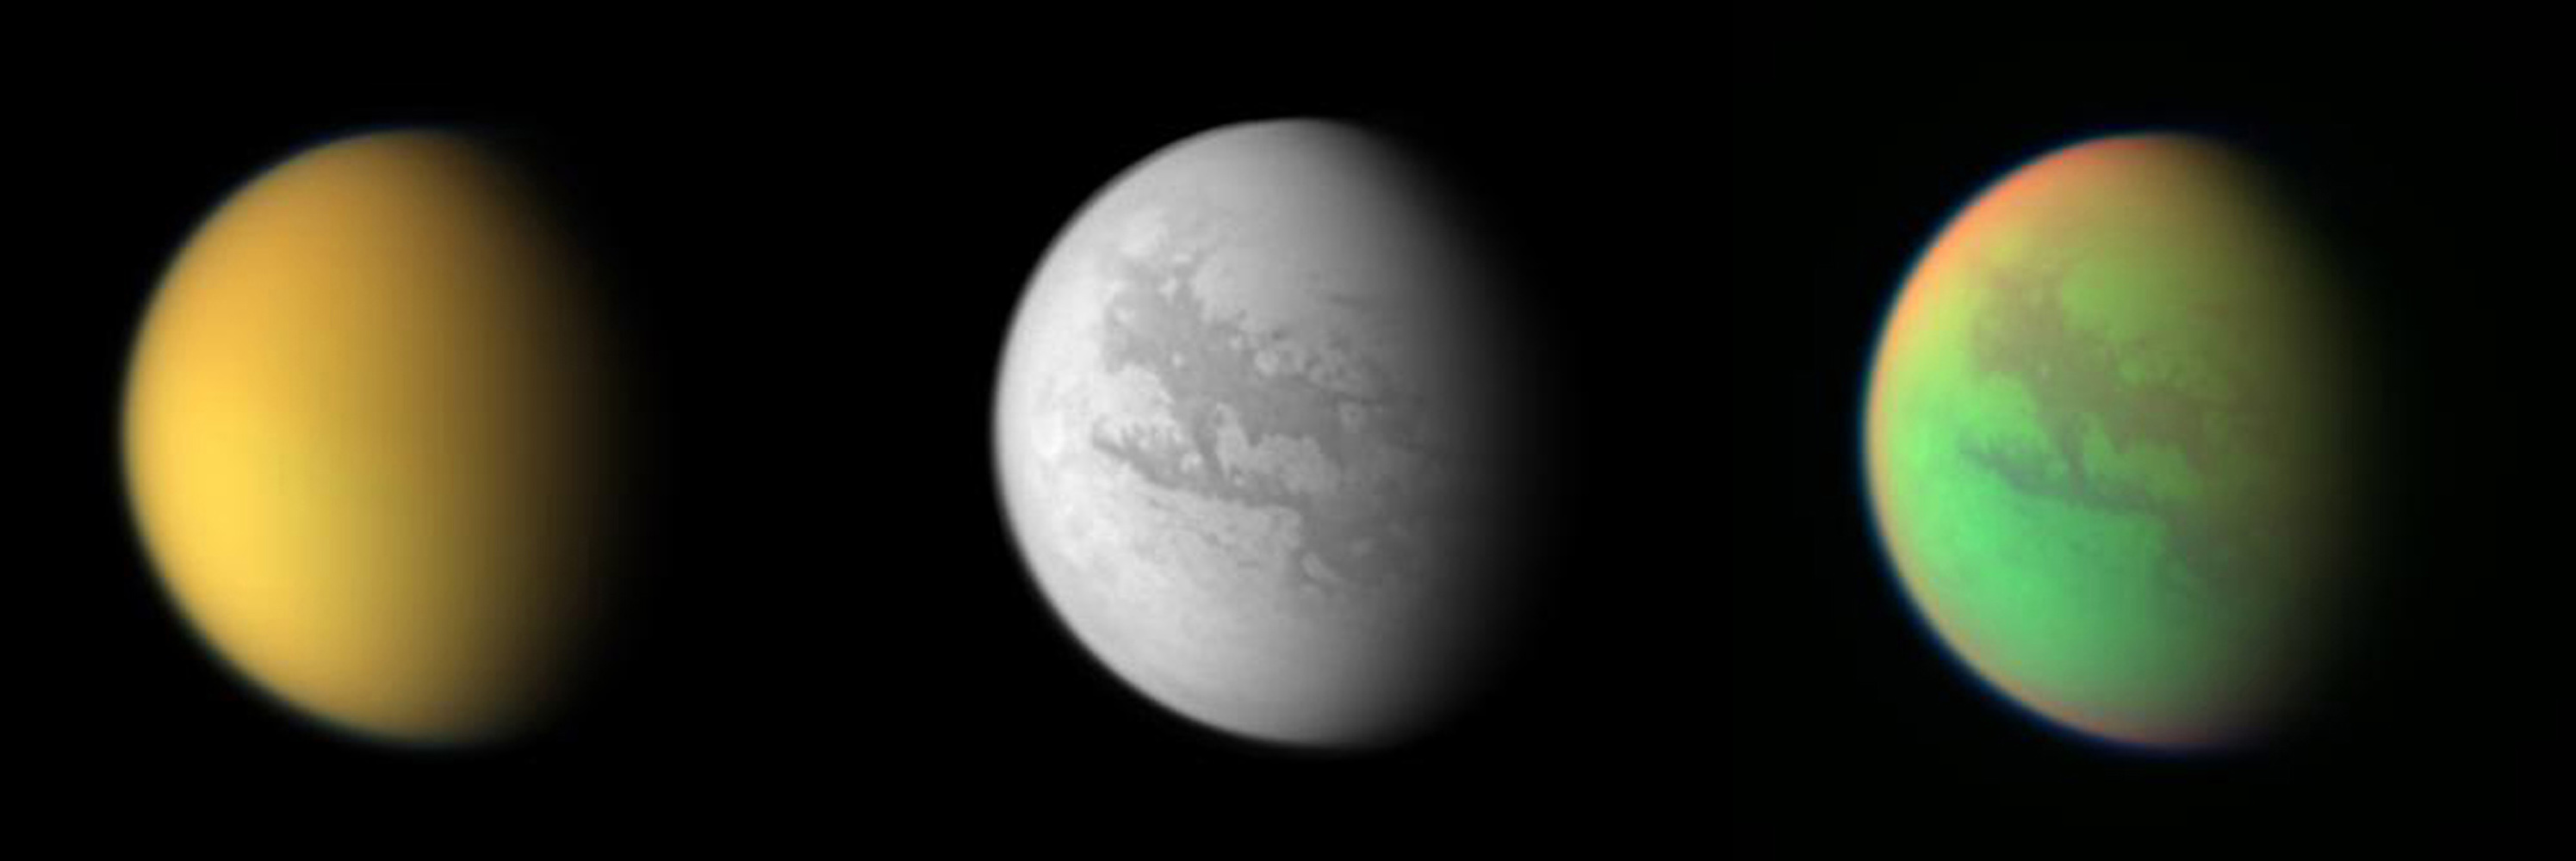 These three views of Titan from NASA's Cassini spacecraft illustrate how different the same place can look in different wavelengths of light.